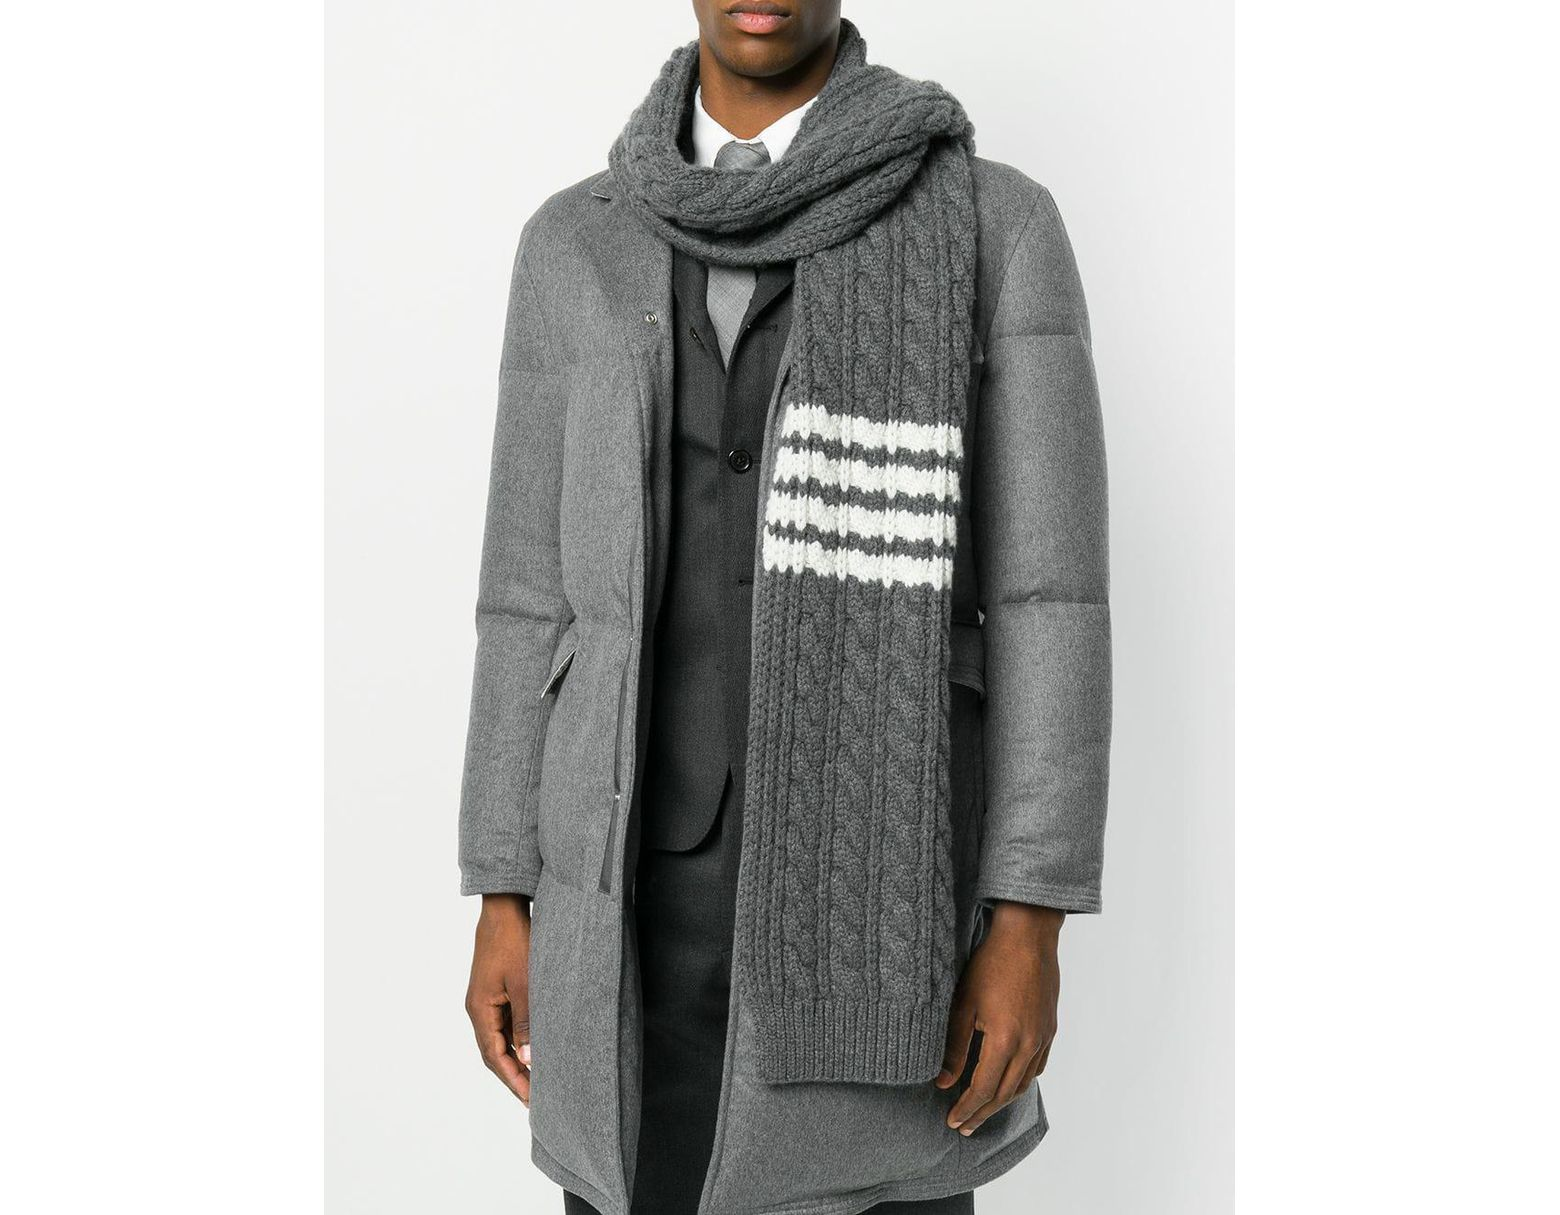 4ceac7be5f Thom Browne Chunky Cable Cashmere Scarf in Gray for Men - Lyst